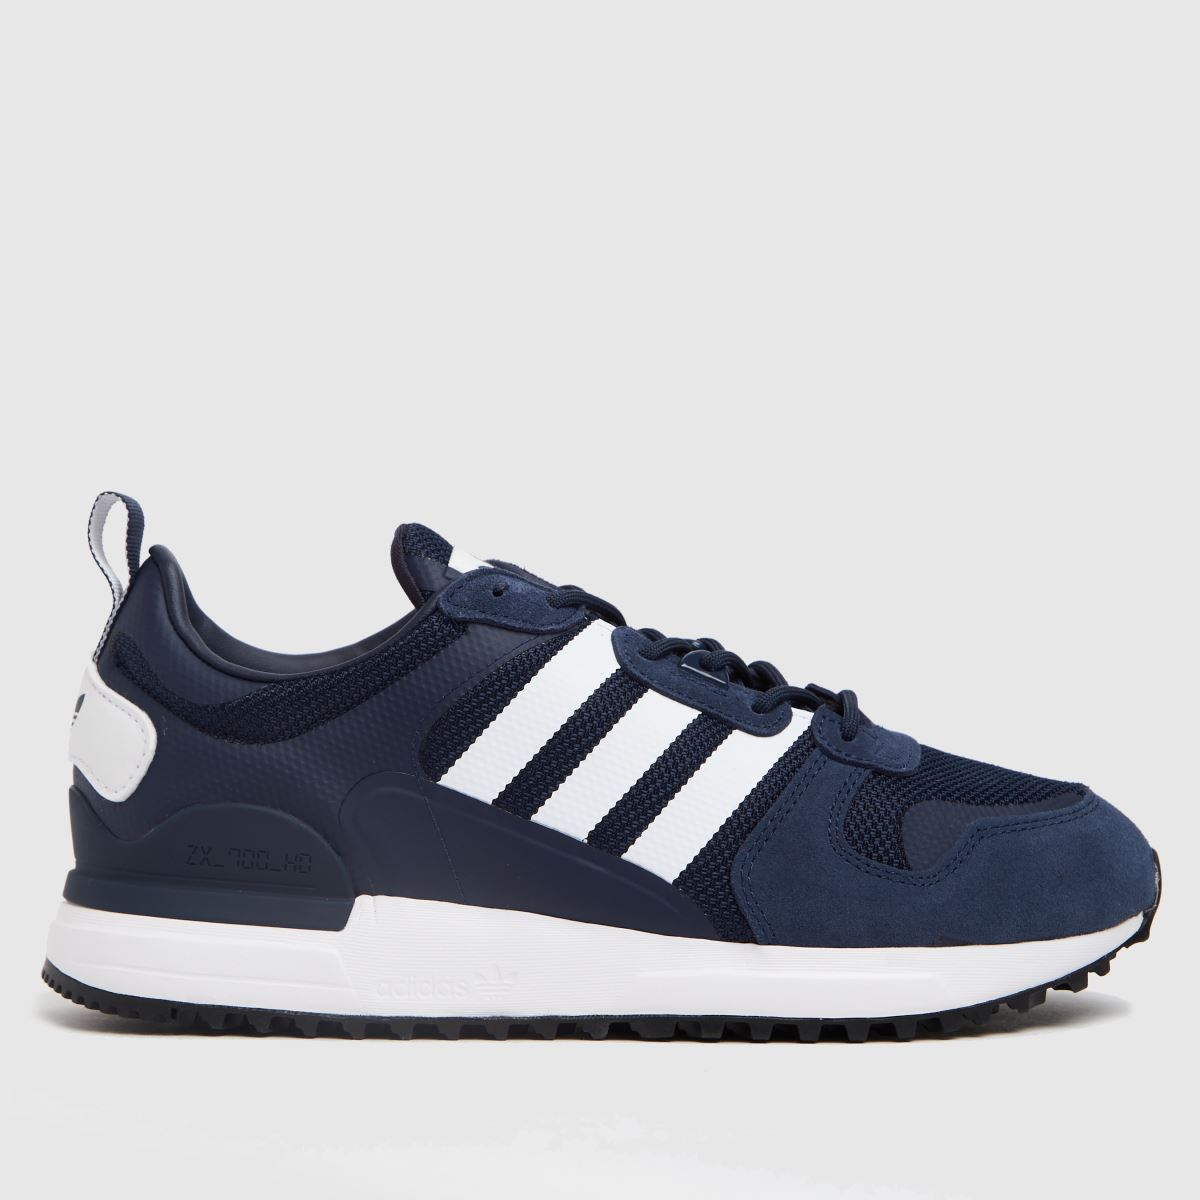 Adidas Navy & White Zx 700 Hd Trainers